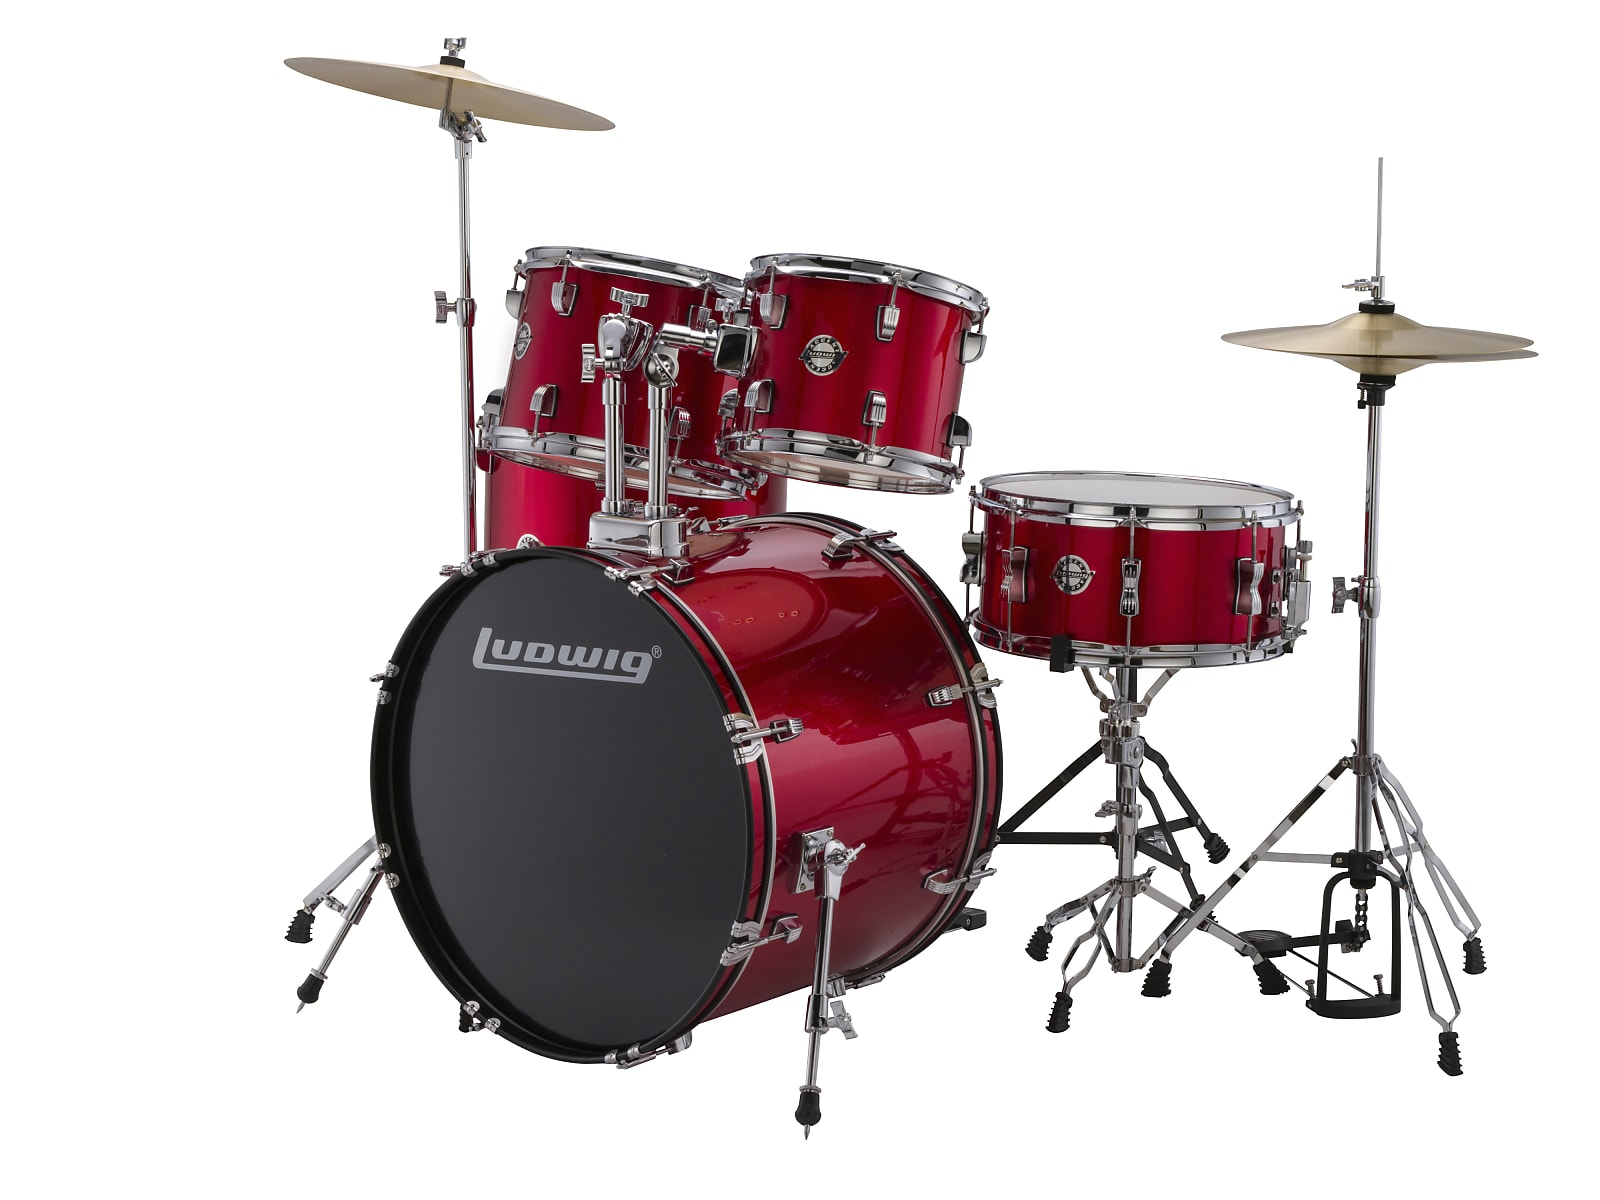 Ludwig LC170 5pc. Accent Fuse Complete Drum Kit - Red 2019